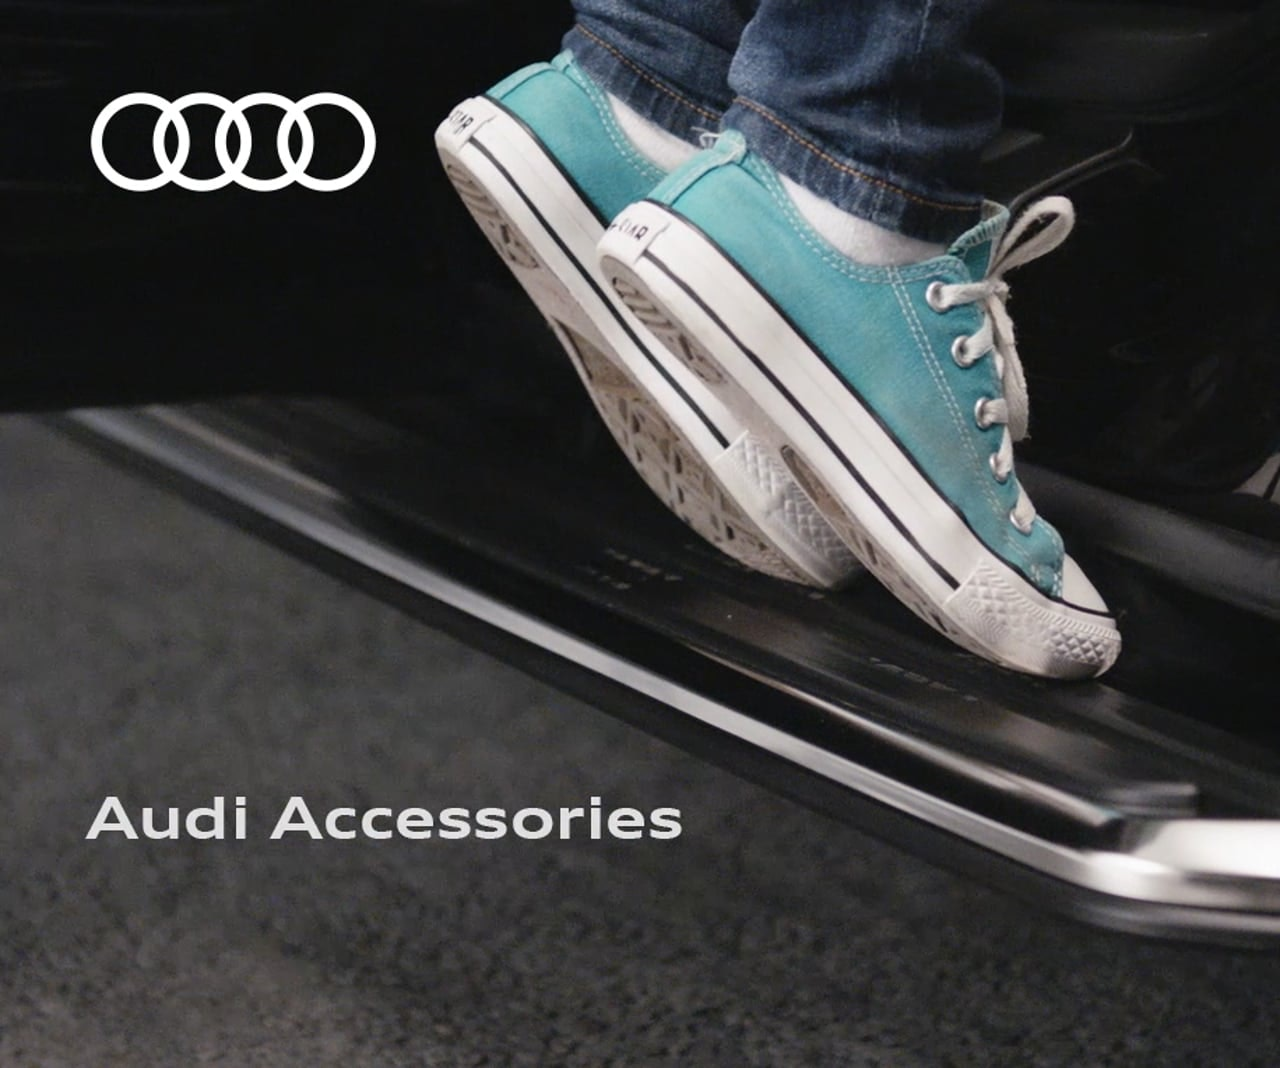 Audi Accessories- Running Boards